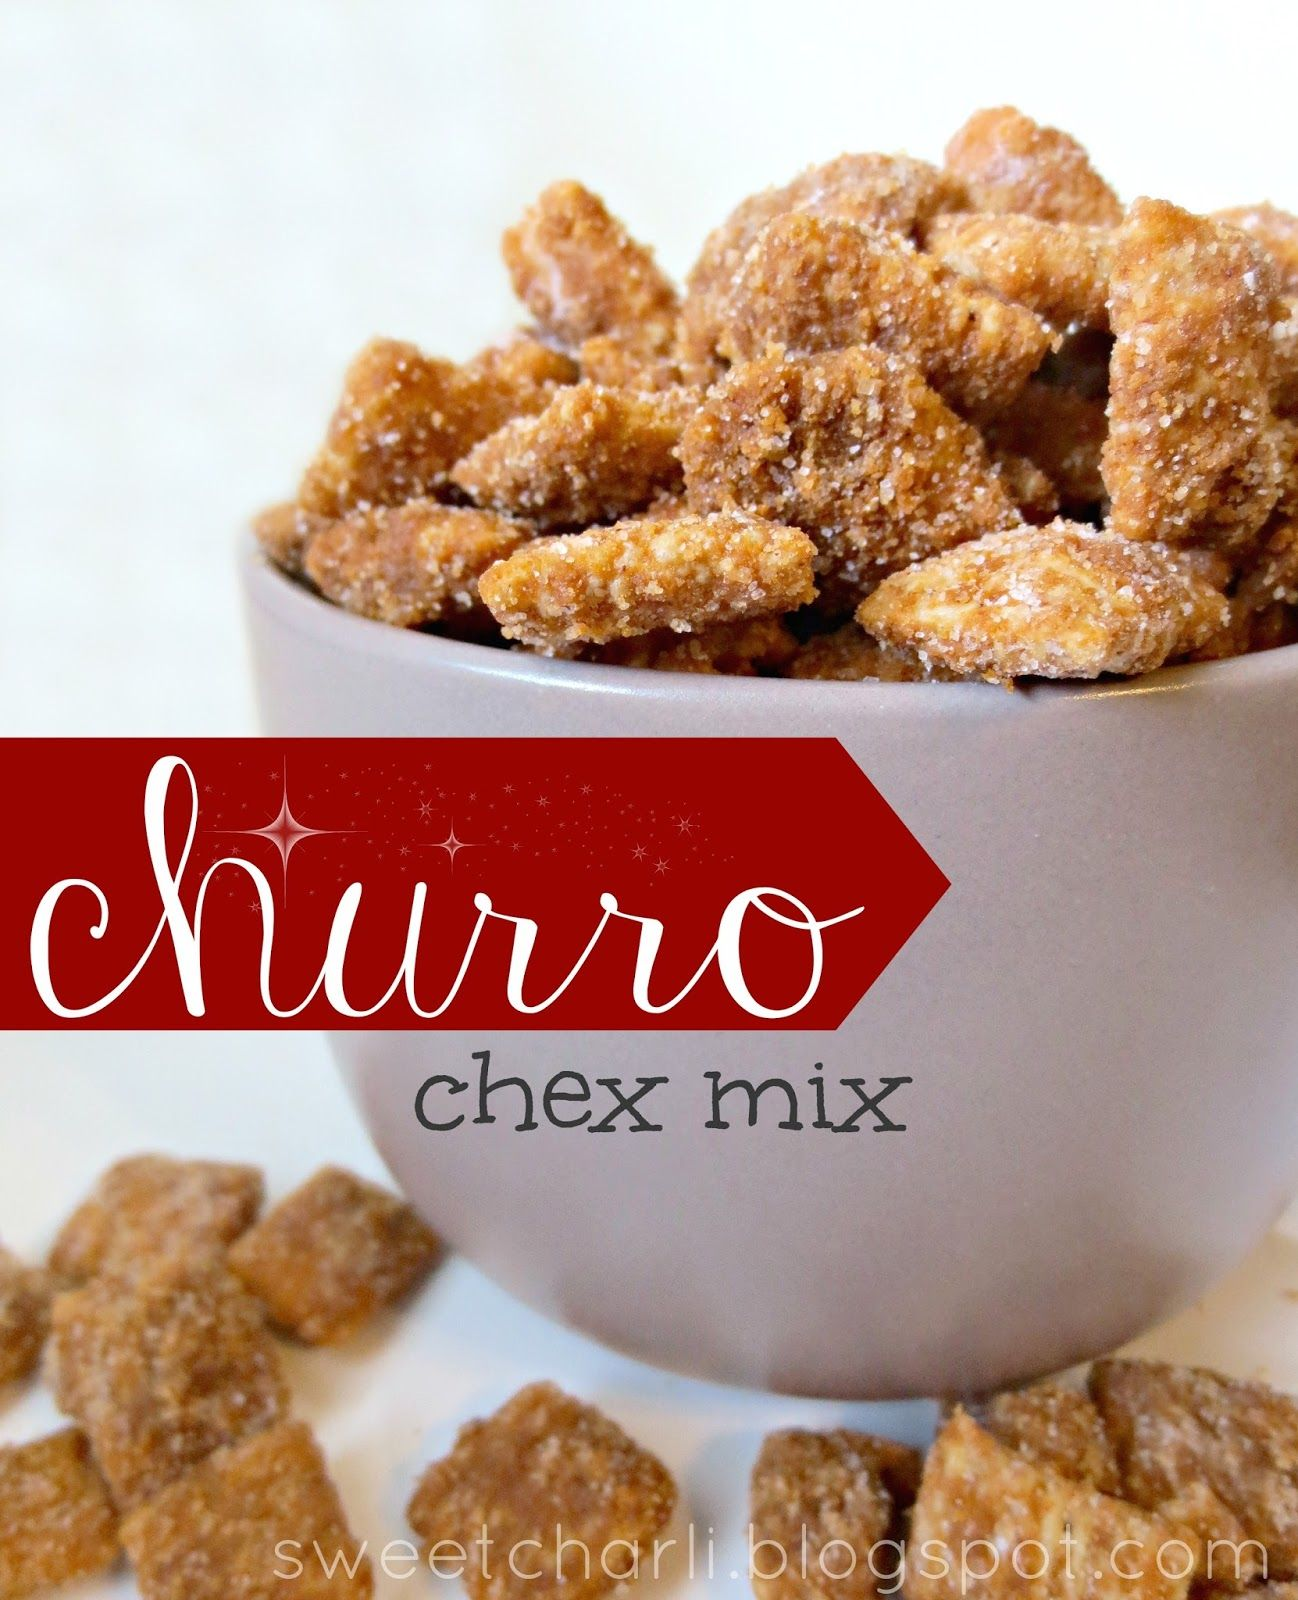 Sweet Charli Churro Chex Mix Use Rice Or Corn Chex To Keep It Gf White Chex Mix Chex Mix Recipes Chex Mix Food